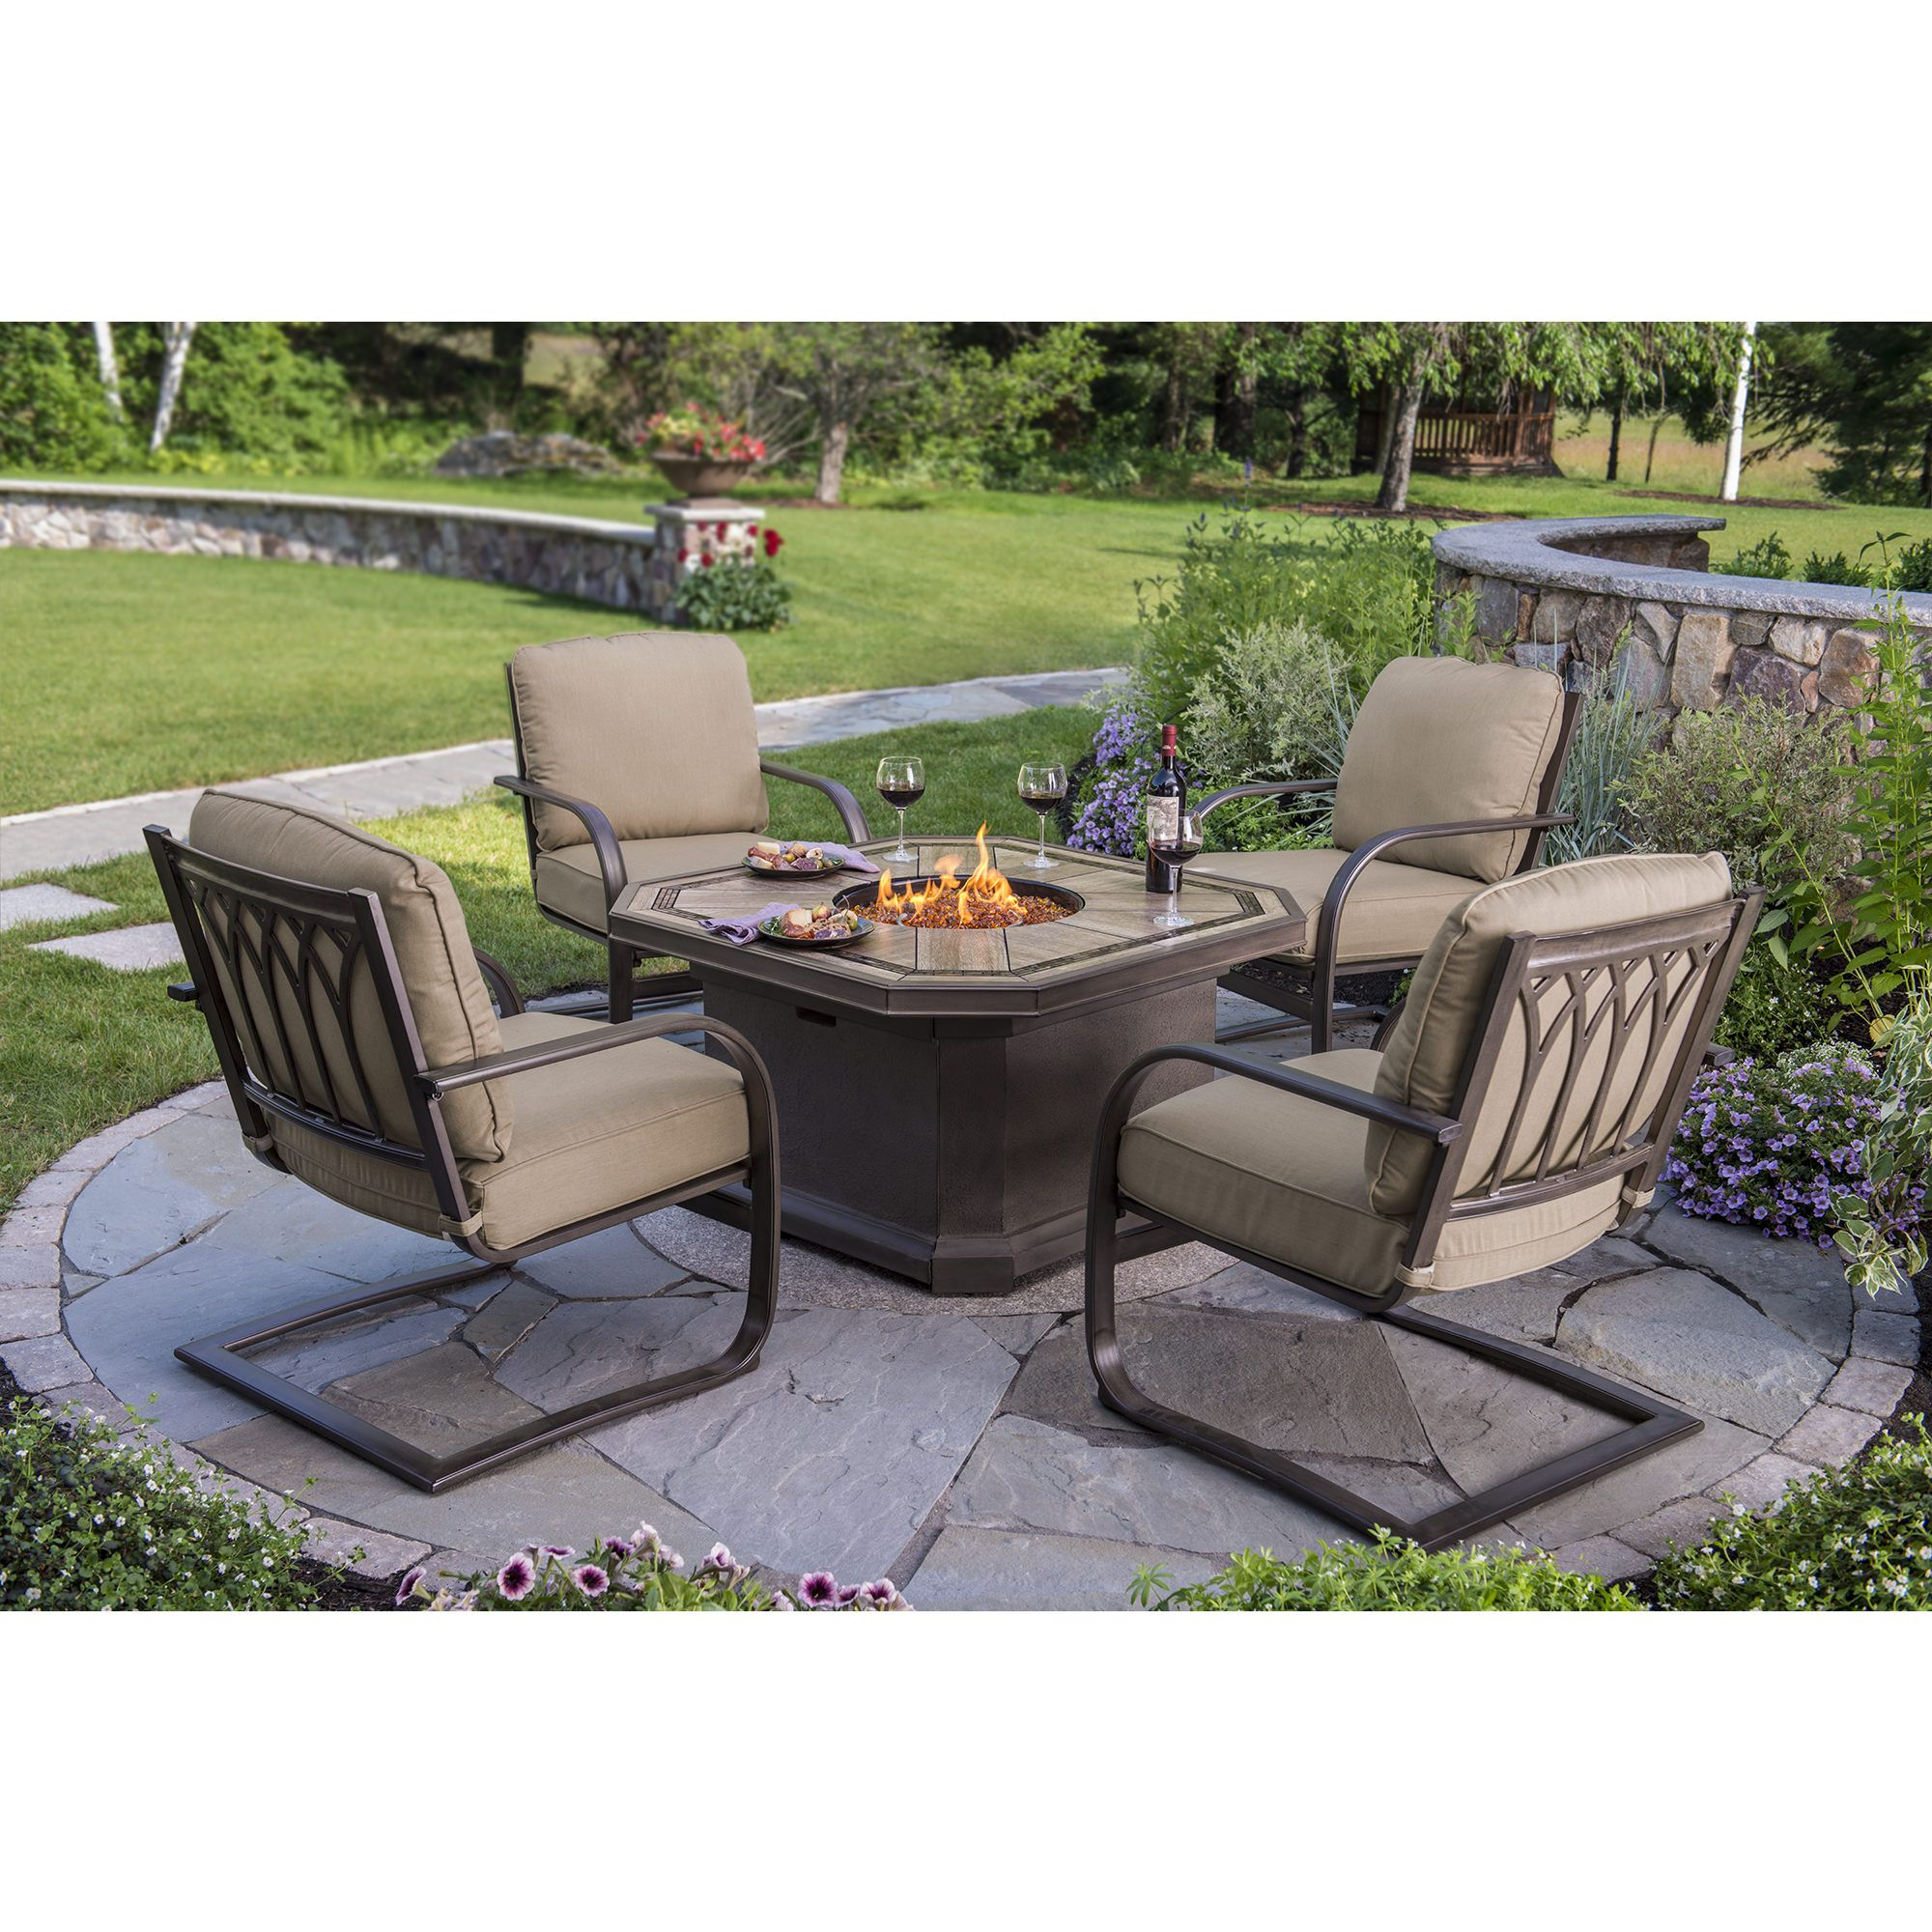 Berkley Jensen 5-piece Fire Pit Set With Spring Cushions